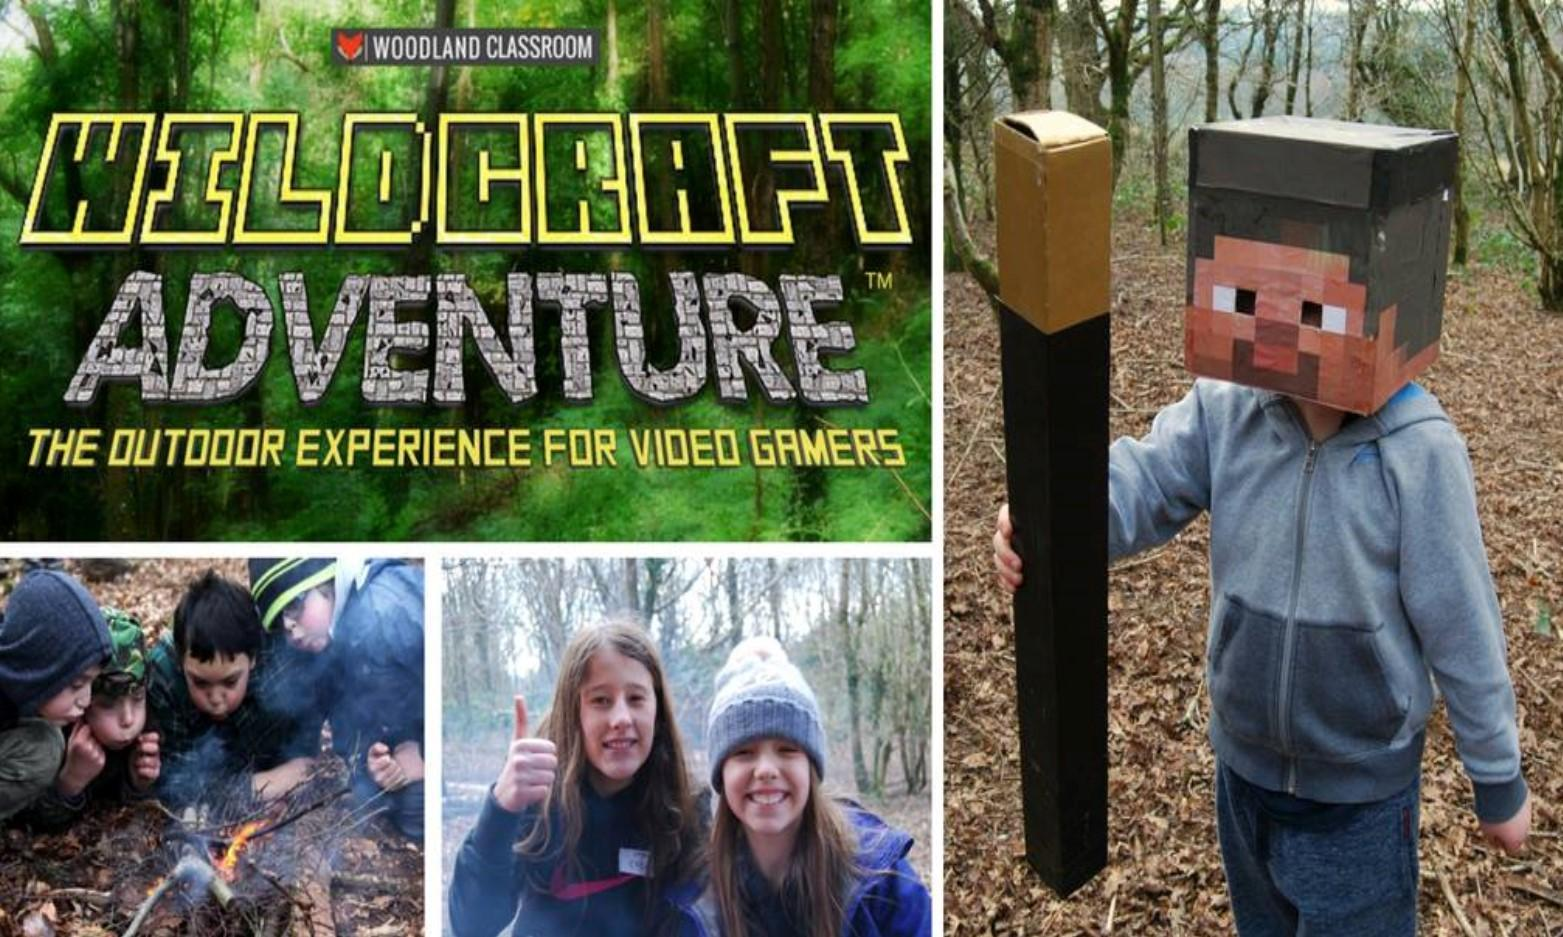 Wildcraft Outdoor Adventure for Video Gamers